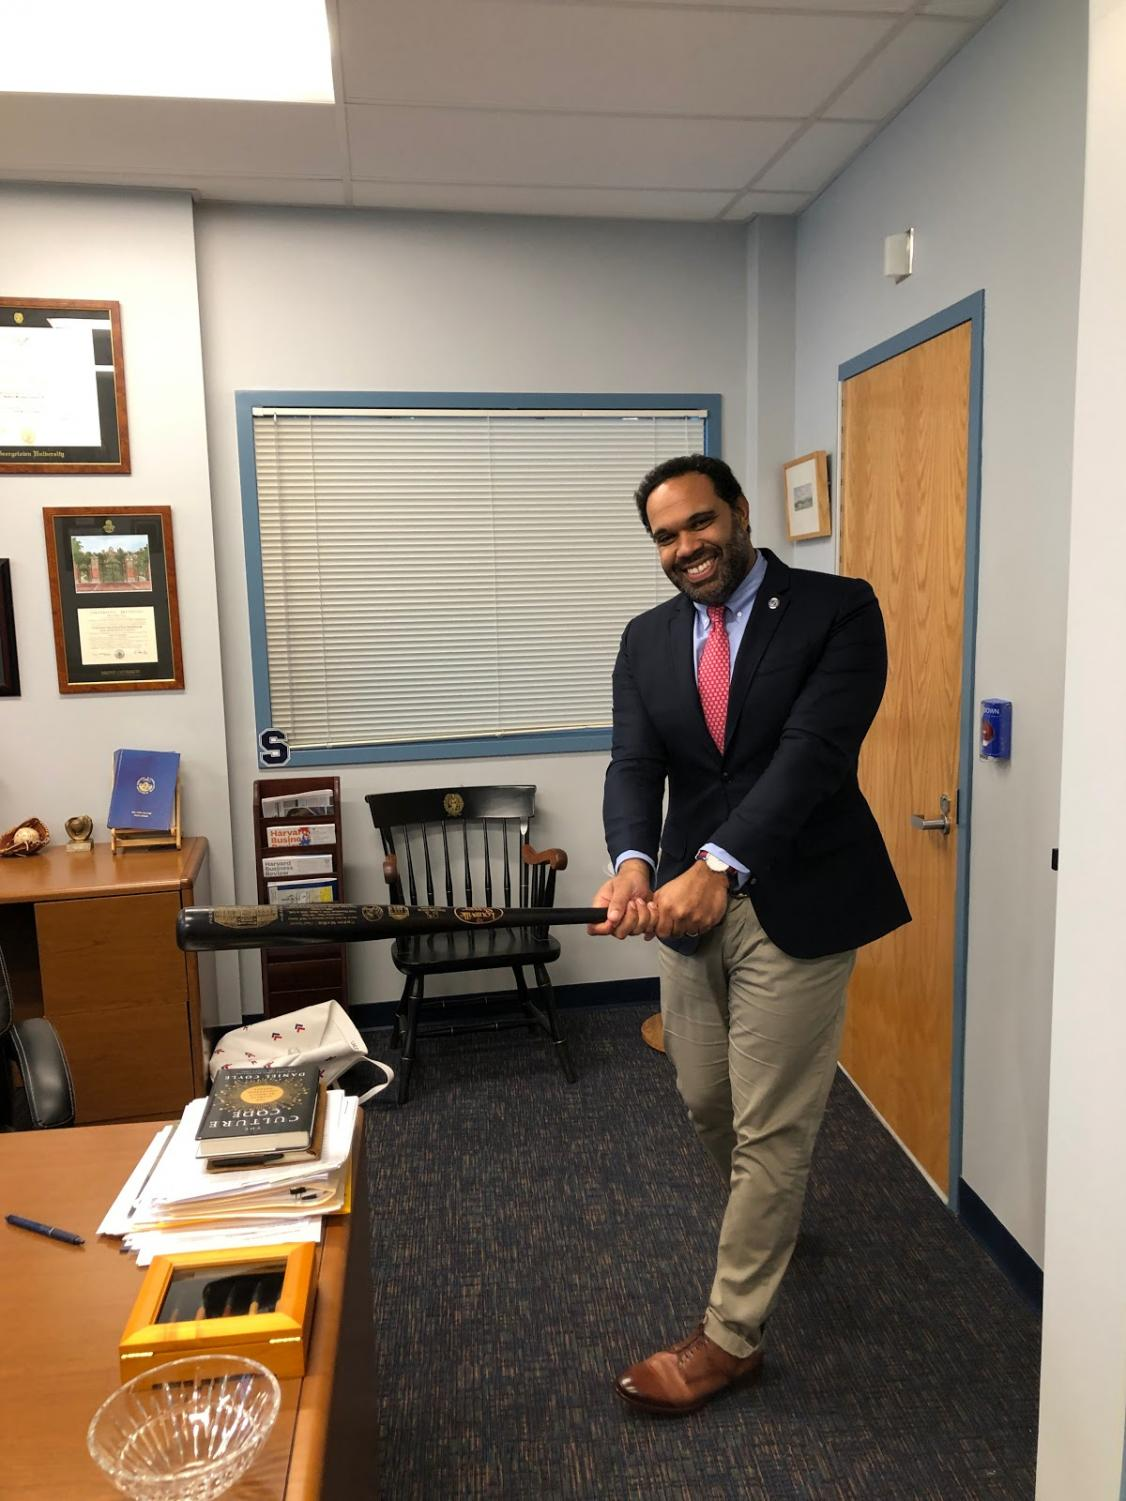 Principal Thomas channeling his old baseball skills with his signature swing. As a Yankee fan, Thomas's eyes will be glued to the television this October as he watches the Bronx Bombers try to win the World Series for the first time since 2009.